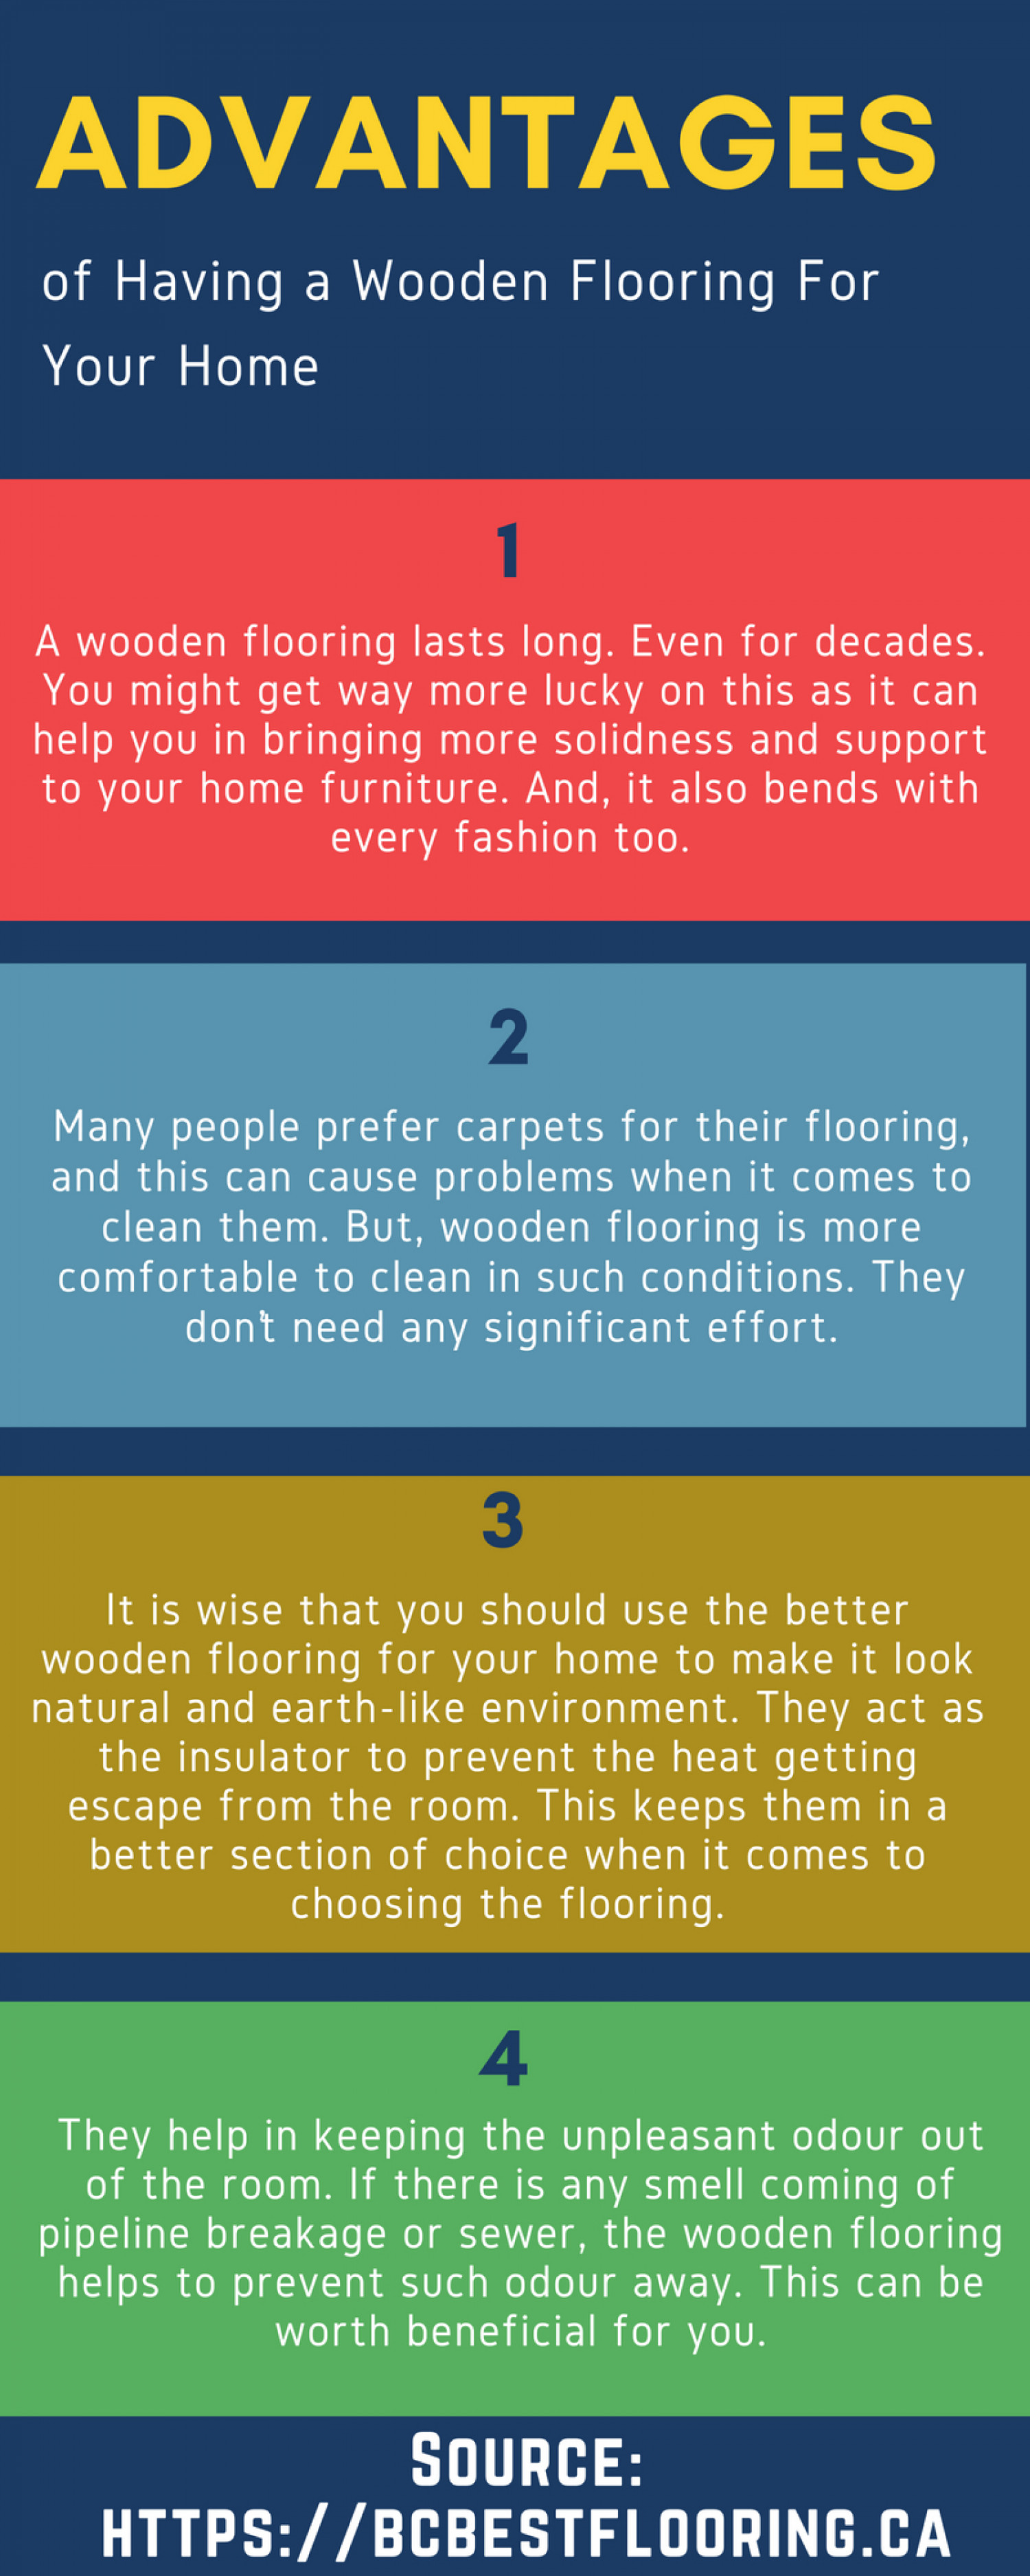 Advantages of Having a Wooden Flooring For Your Home Infographic